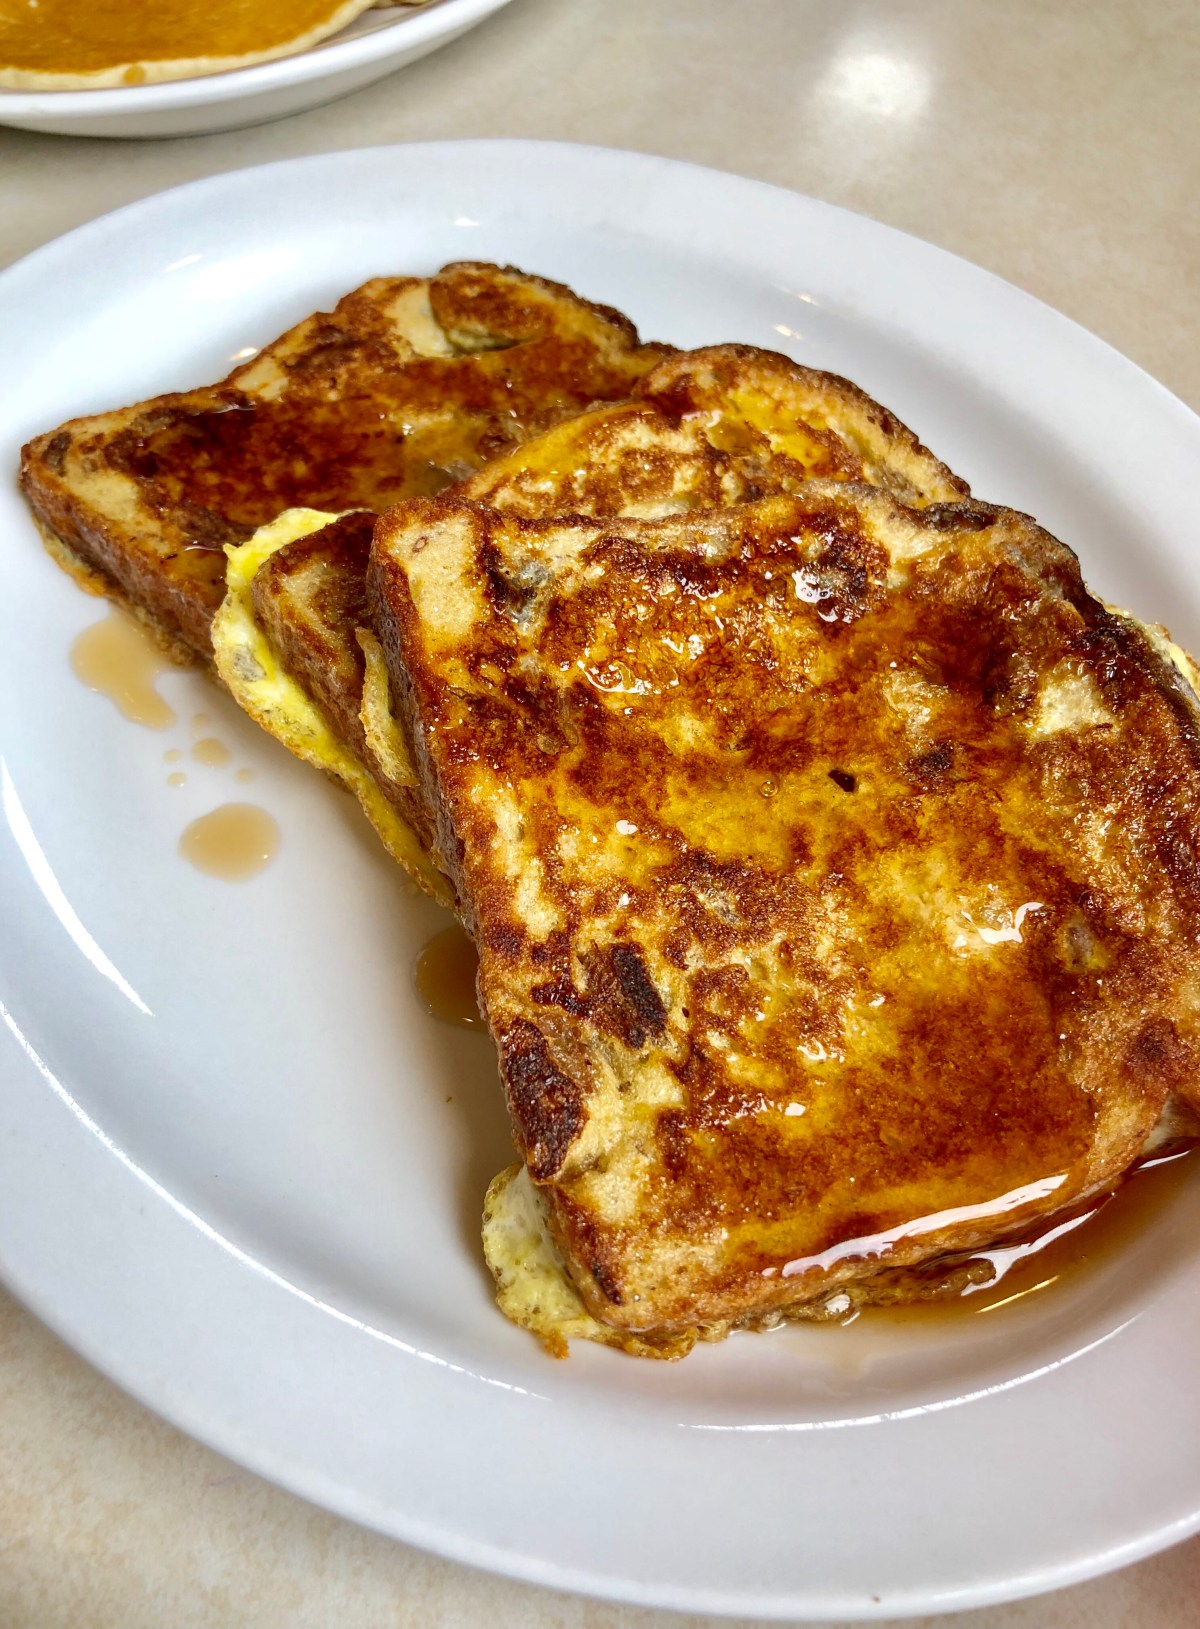 Cinnamon Raisin French Toast at the Little Red Rooster